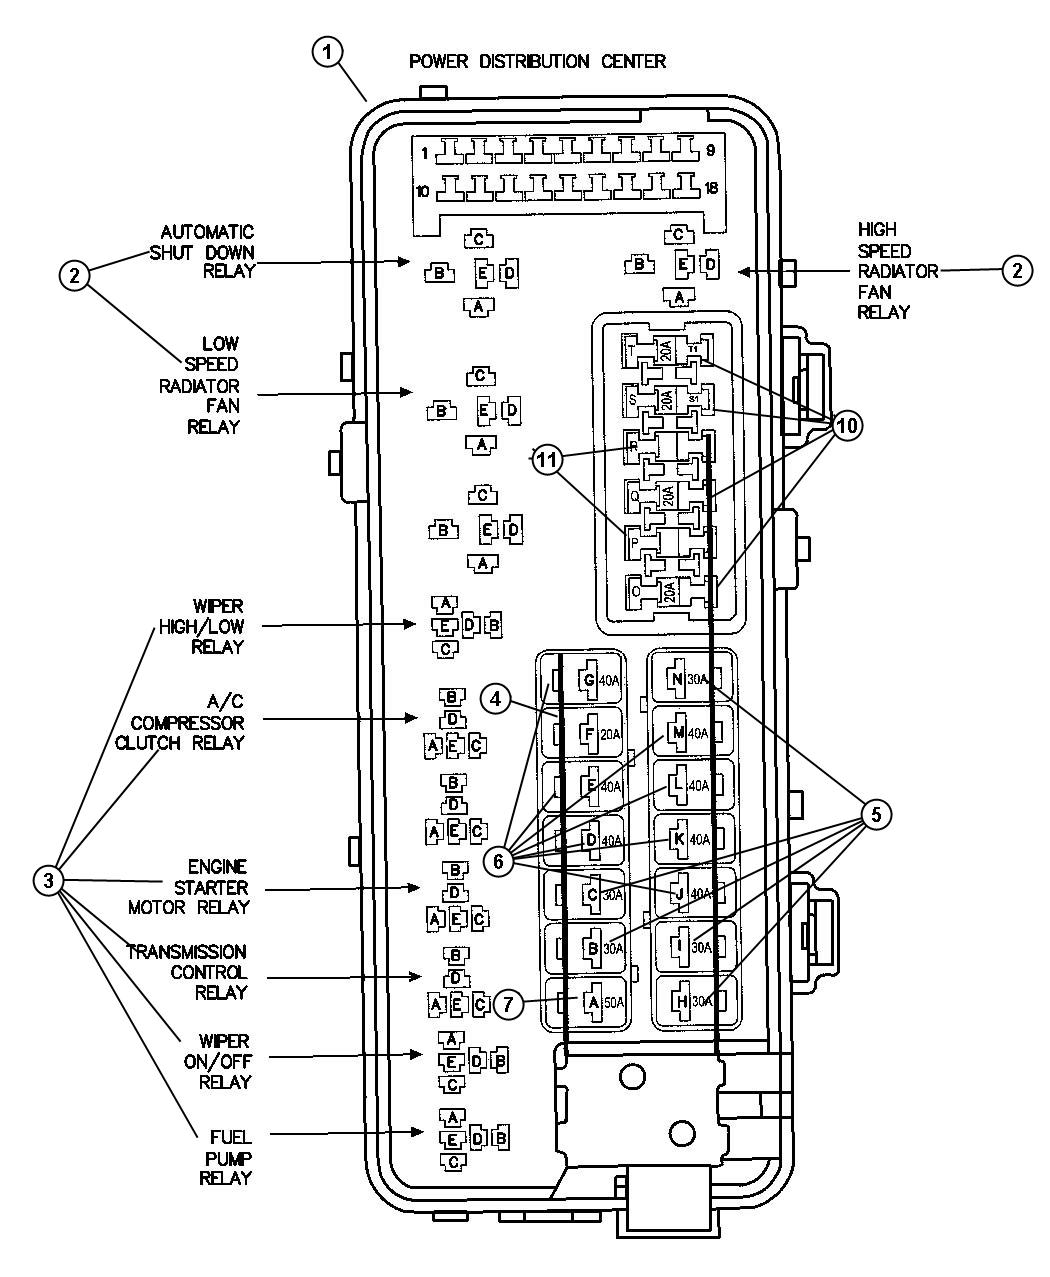 95 Chrysler Concorde Fuse Diagram, 95, Free Engine Image